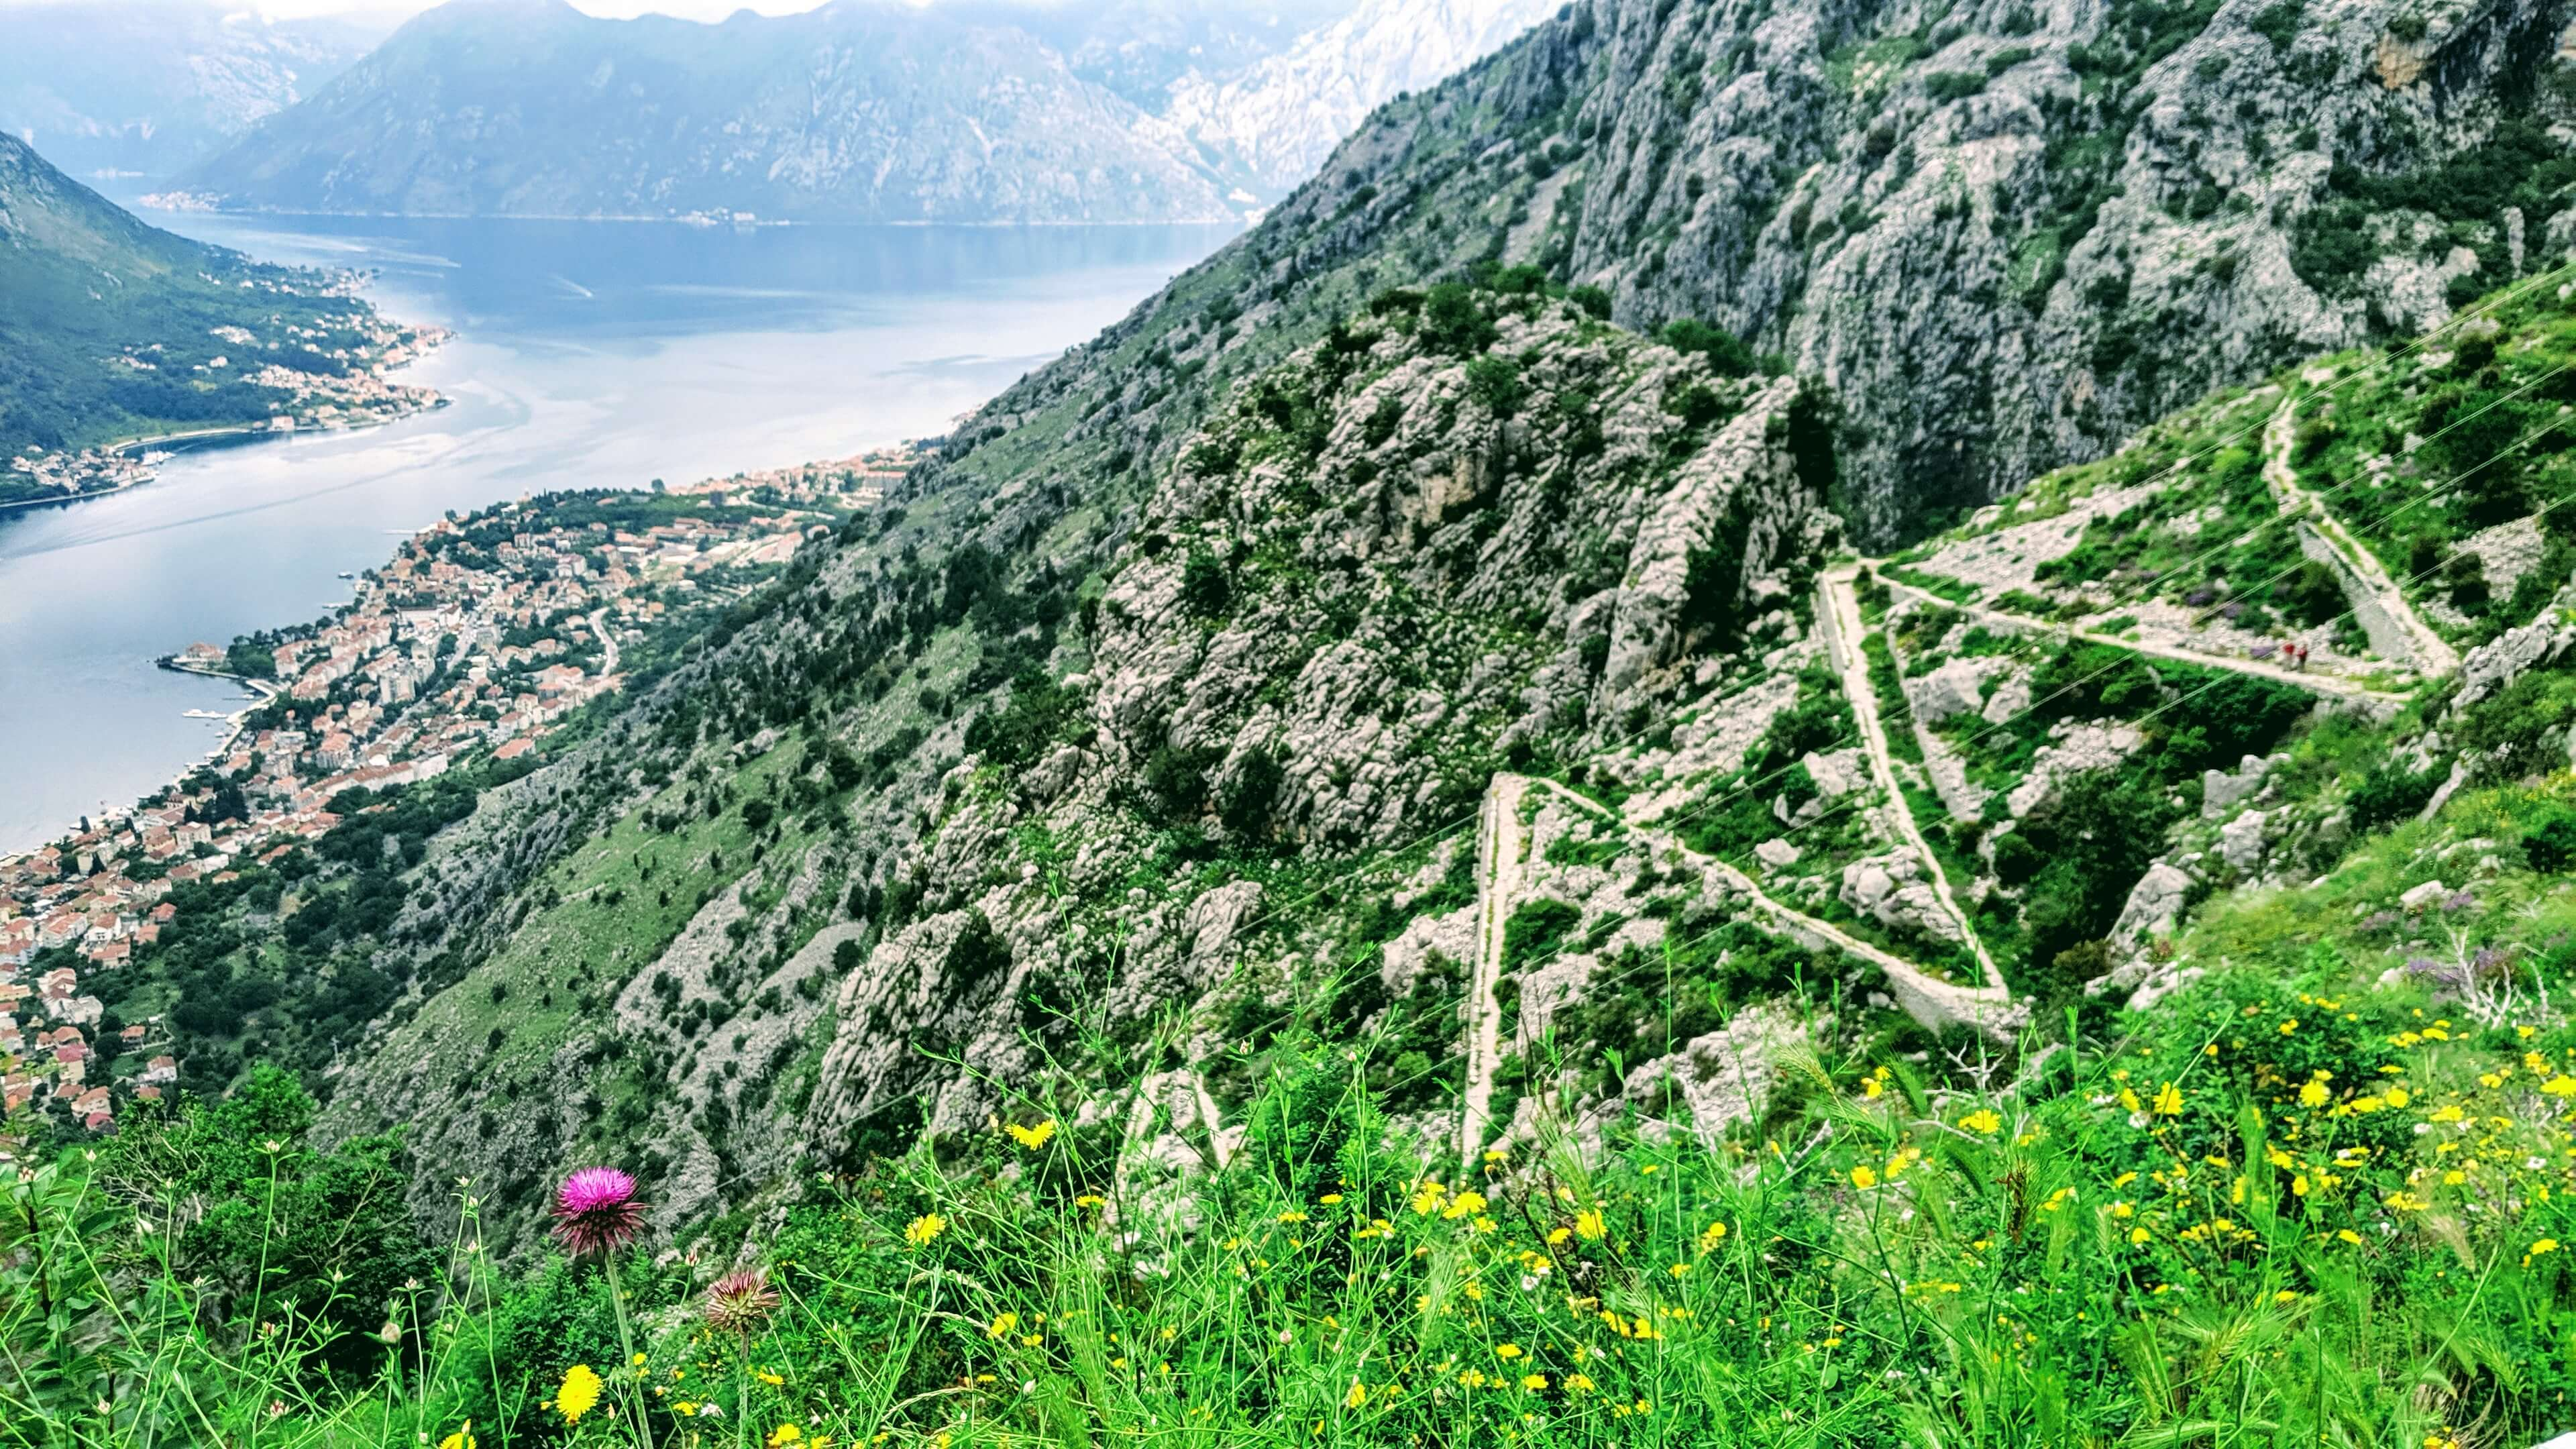 Switchback overlooking the Bay of Kotor.